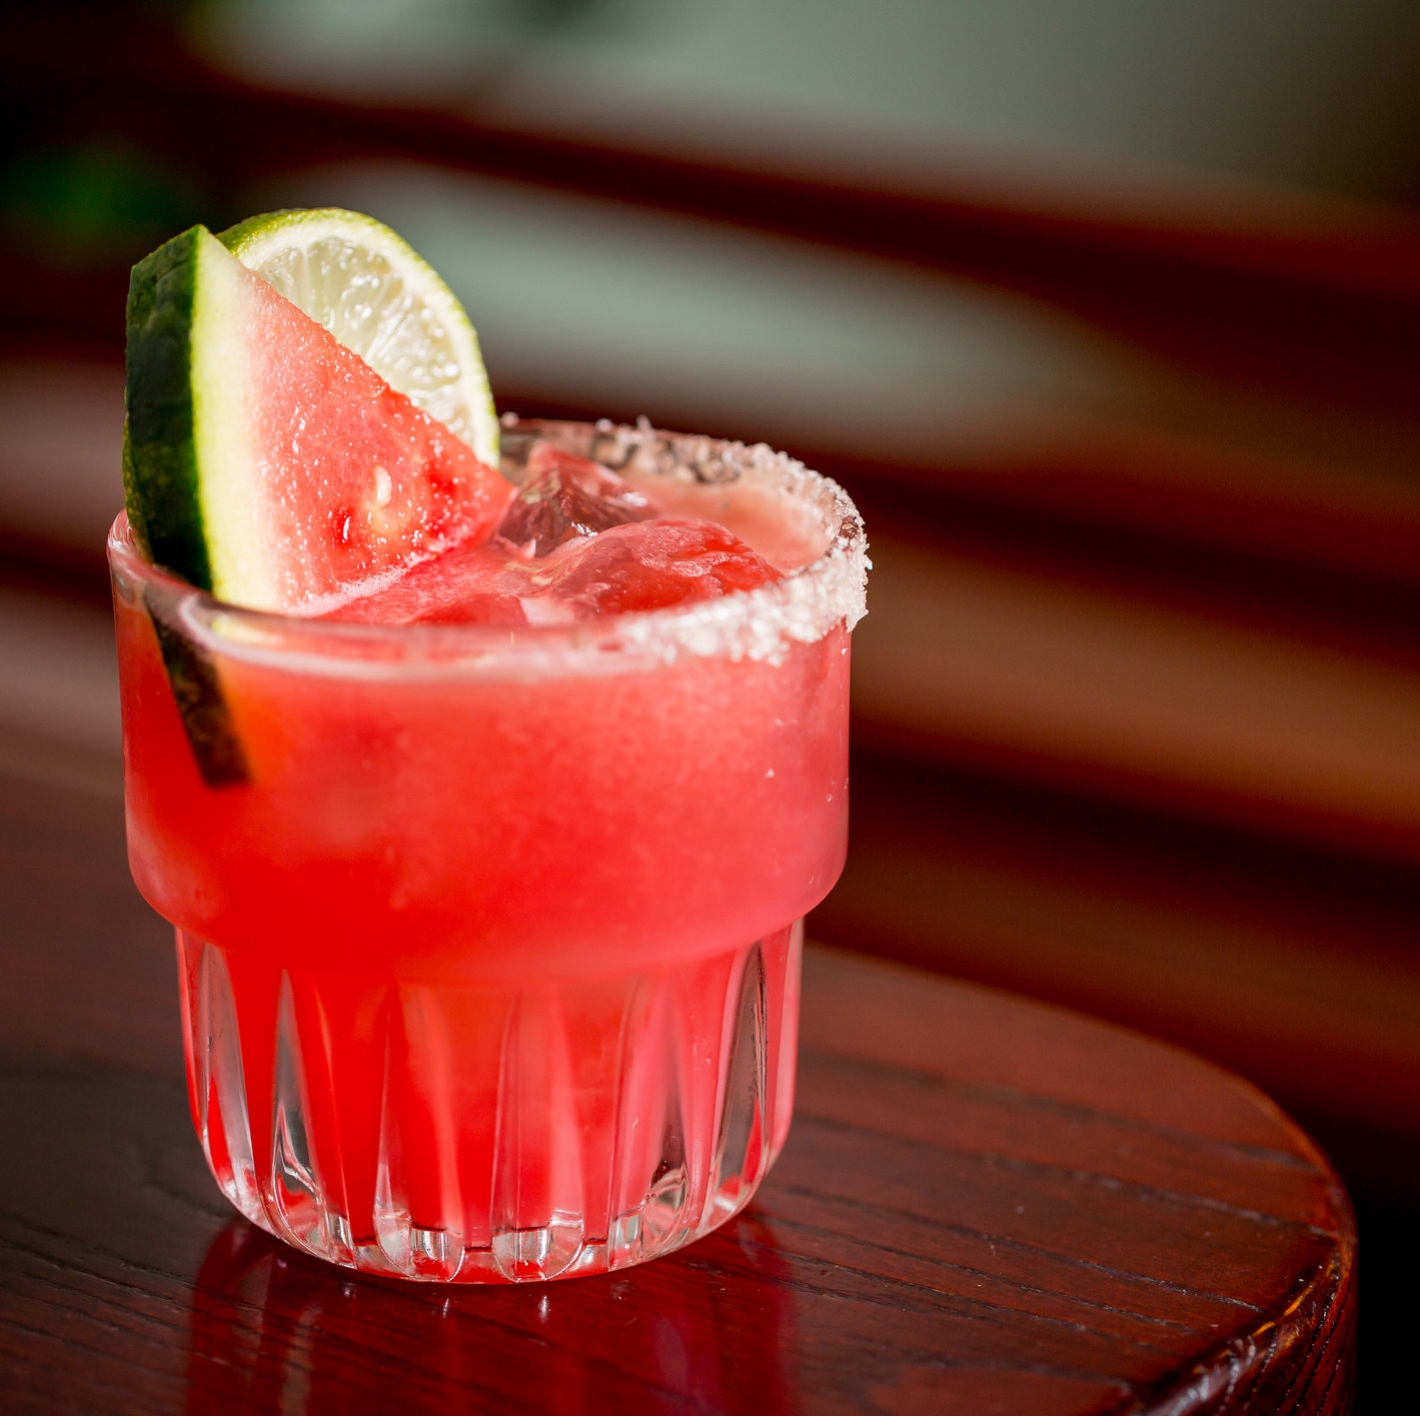 Corazon-drinks-JustinDeSouza-17.jpg